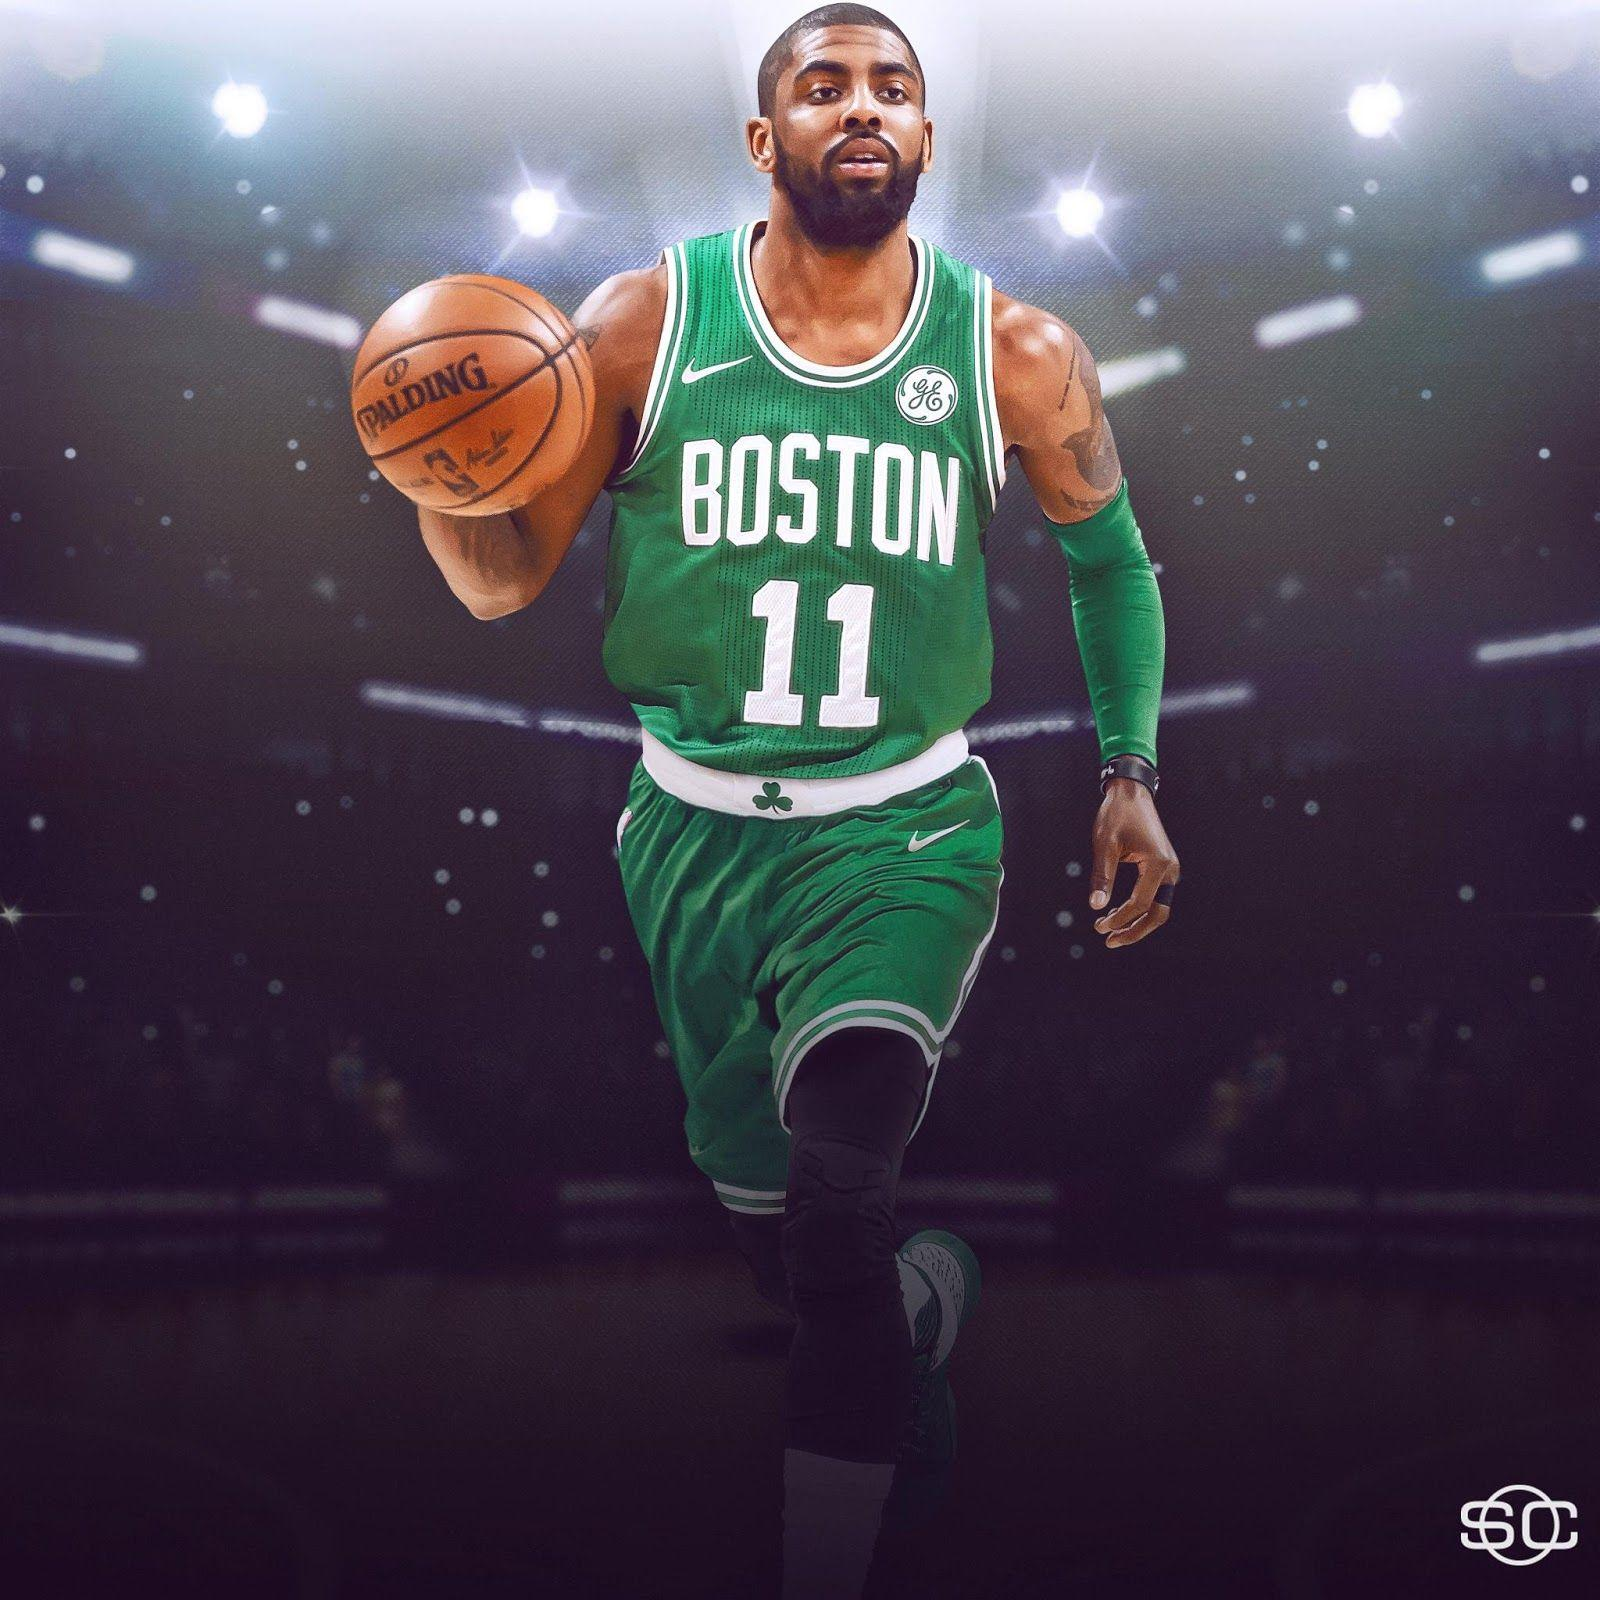 Eyes On NBA: The Kyrie Irving/Isaiah Thomas Trade ~ EyesontheRing.com